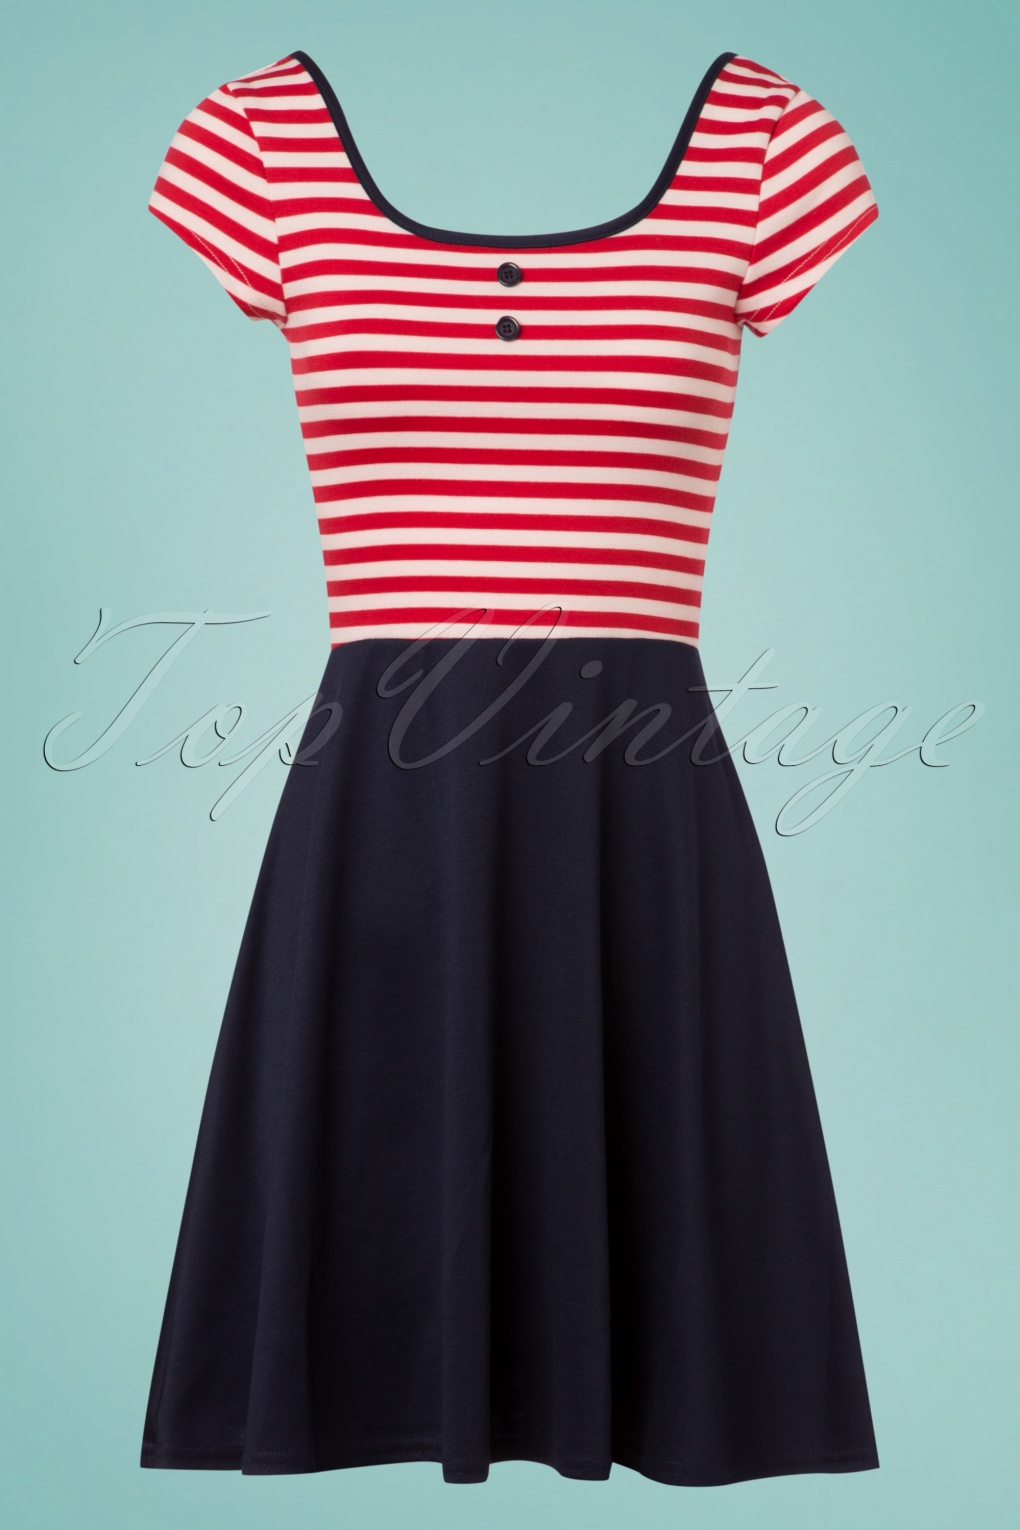 Sailor Dresses, Nautical Dress, Pin Up & WW2 Dresses 60s Salty Sailor Skater Dress in Navy and Red £51.15 AT vintagedancer.com